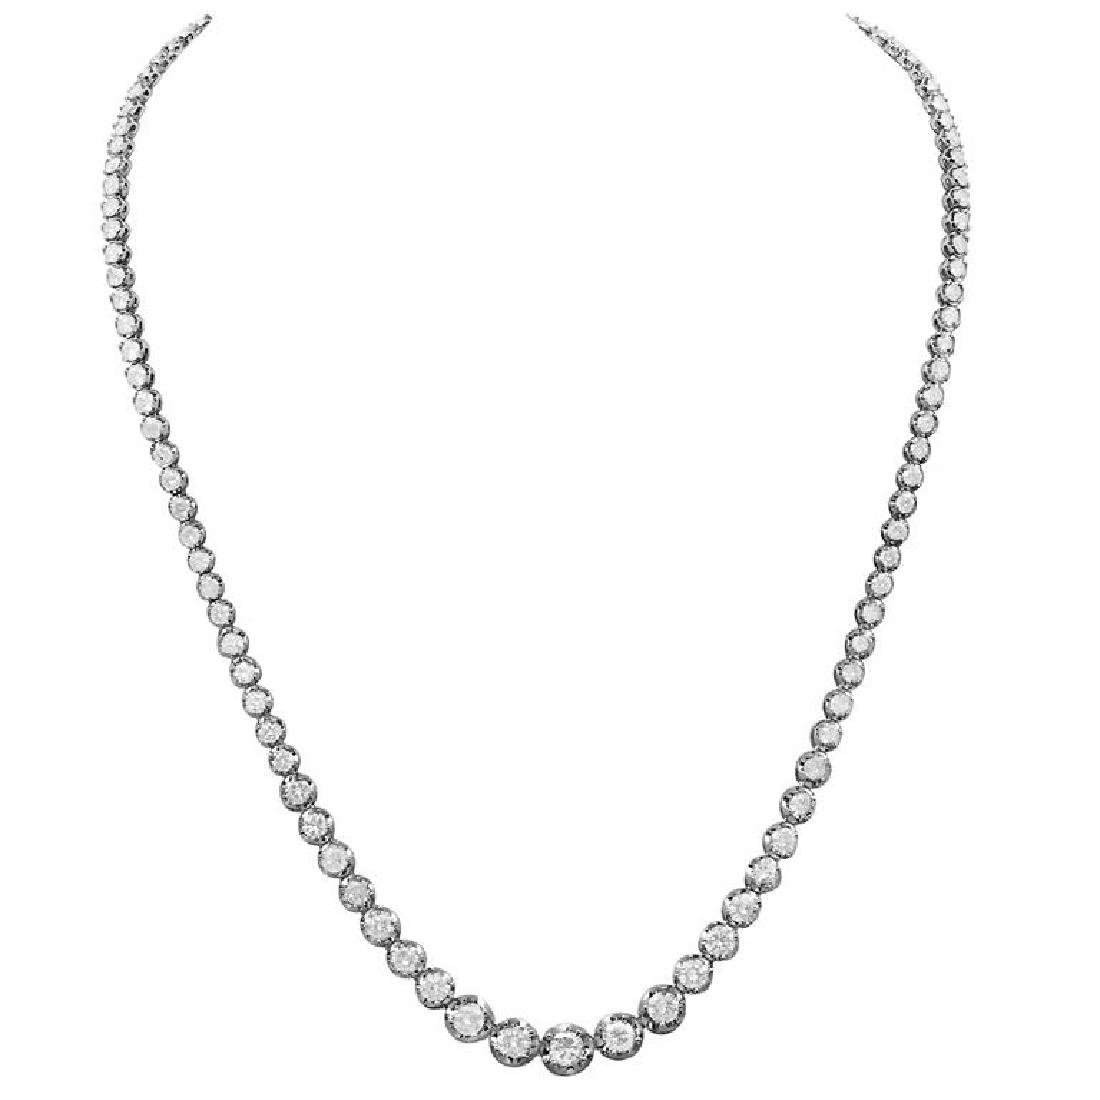 14k White Gold 11.24ct Diamond Necklace